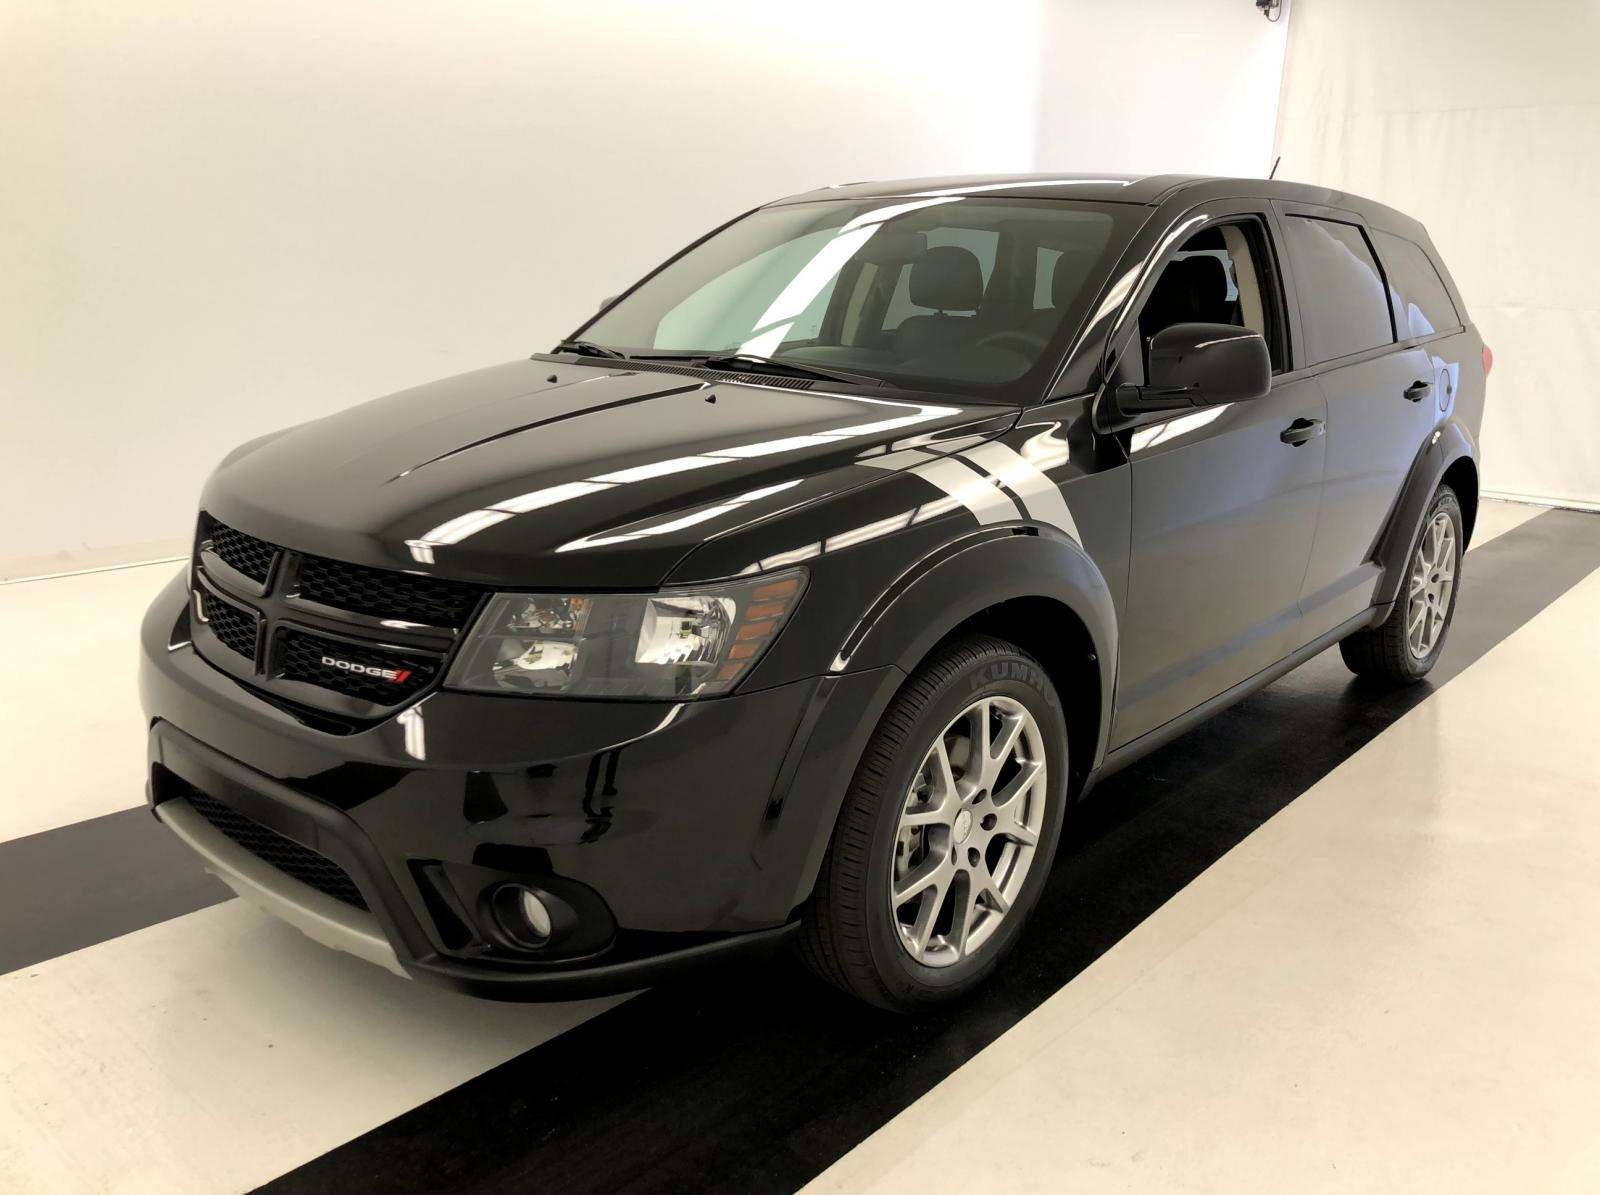 This 2016 Dodge Journey Is For Sale In Stafford Tx Price 19370 00 Mileage 14332 Color Pitch Black Clear Coat Fu In 2020 Buy Used Cars Land Rover Models Jaguar E